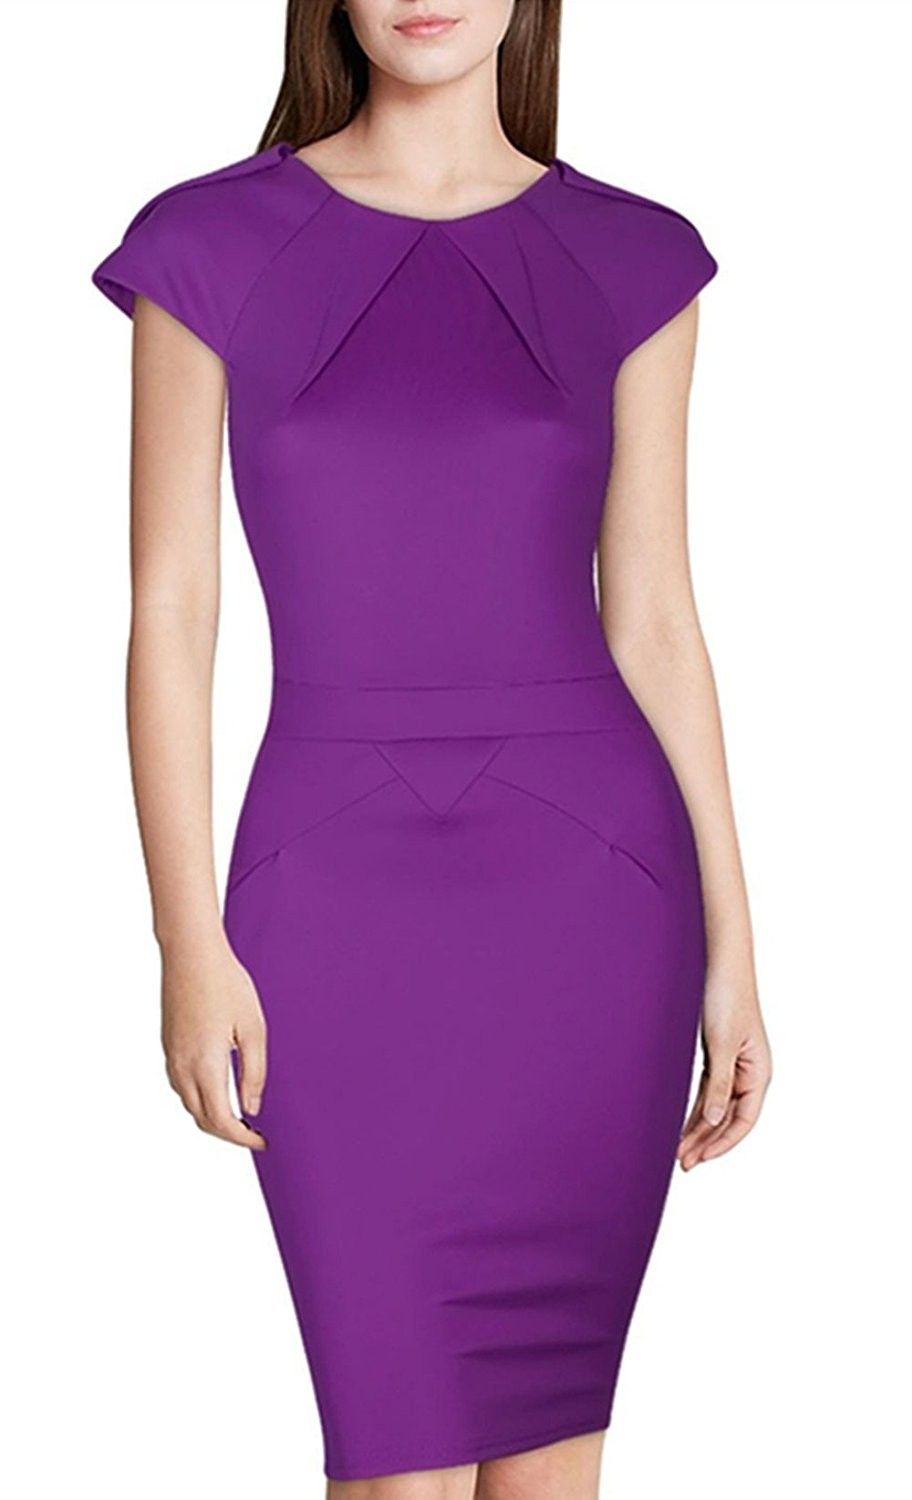 44+ Purple fitted dress information